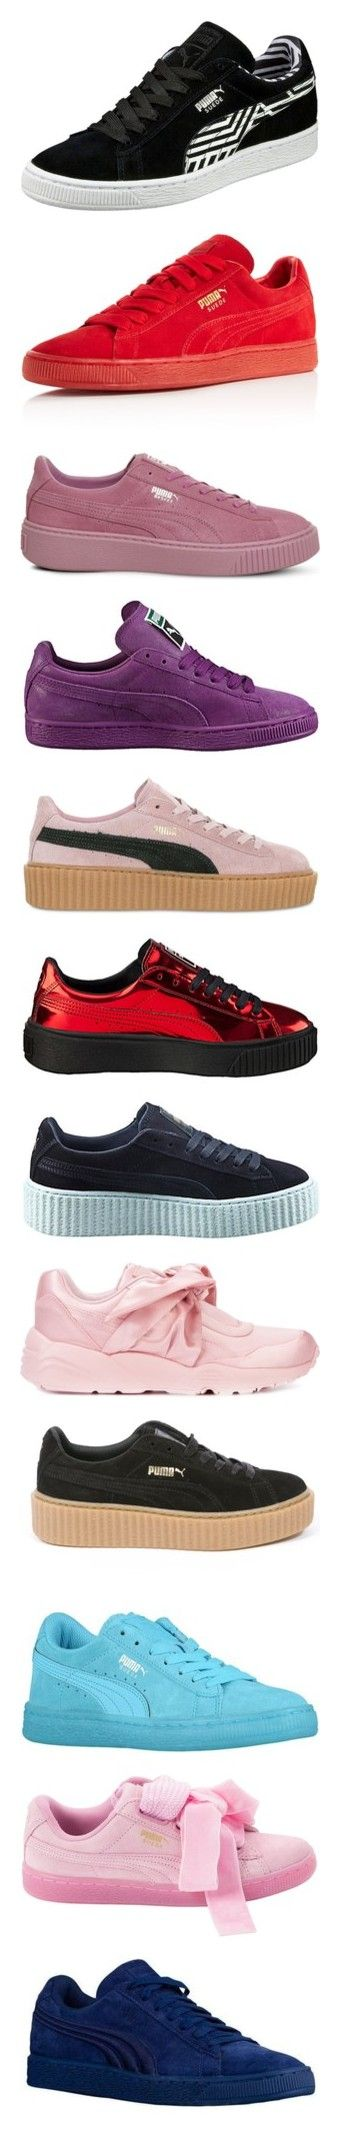 """""""Pumas😍😍😍"""" by jayythegreatest ❤ liked on Polyvore featuring shoes, sneakers, suede sneakers, sports shoes, lacing sneakers, long shoes, stripe shoes, laced up shoes, suede leather shoes and puma footwear"""